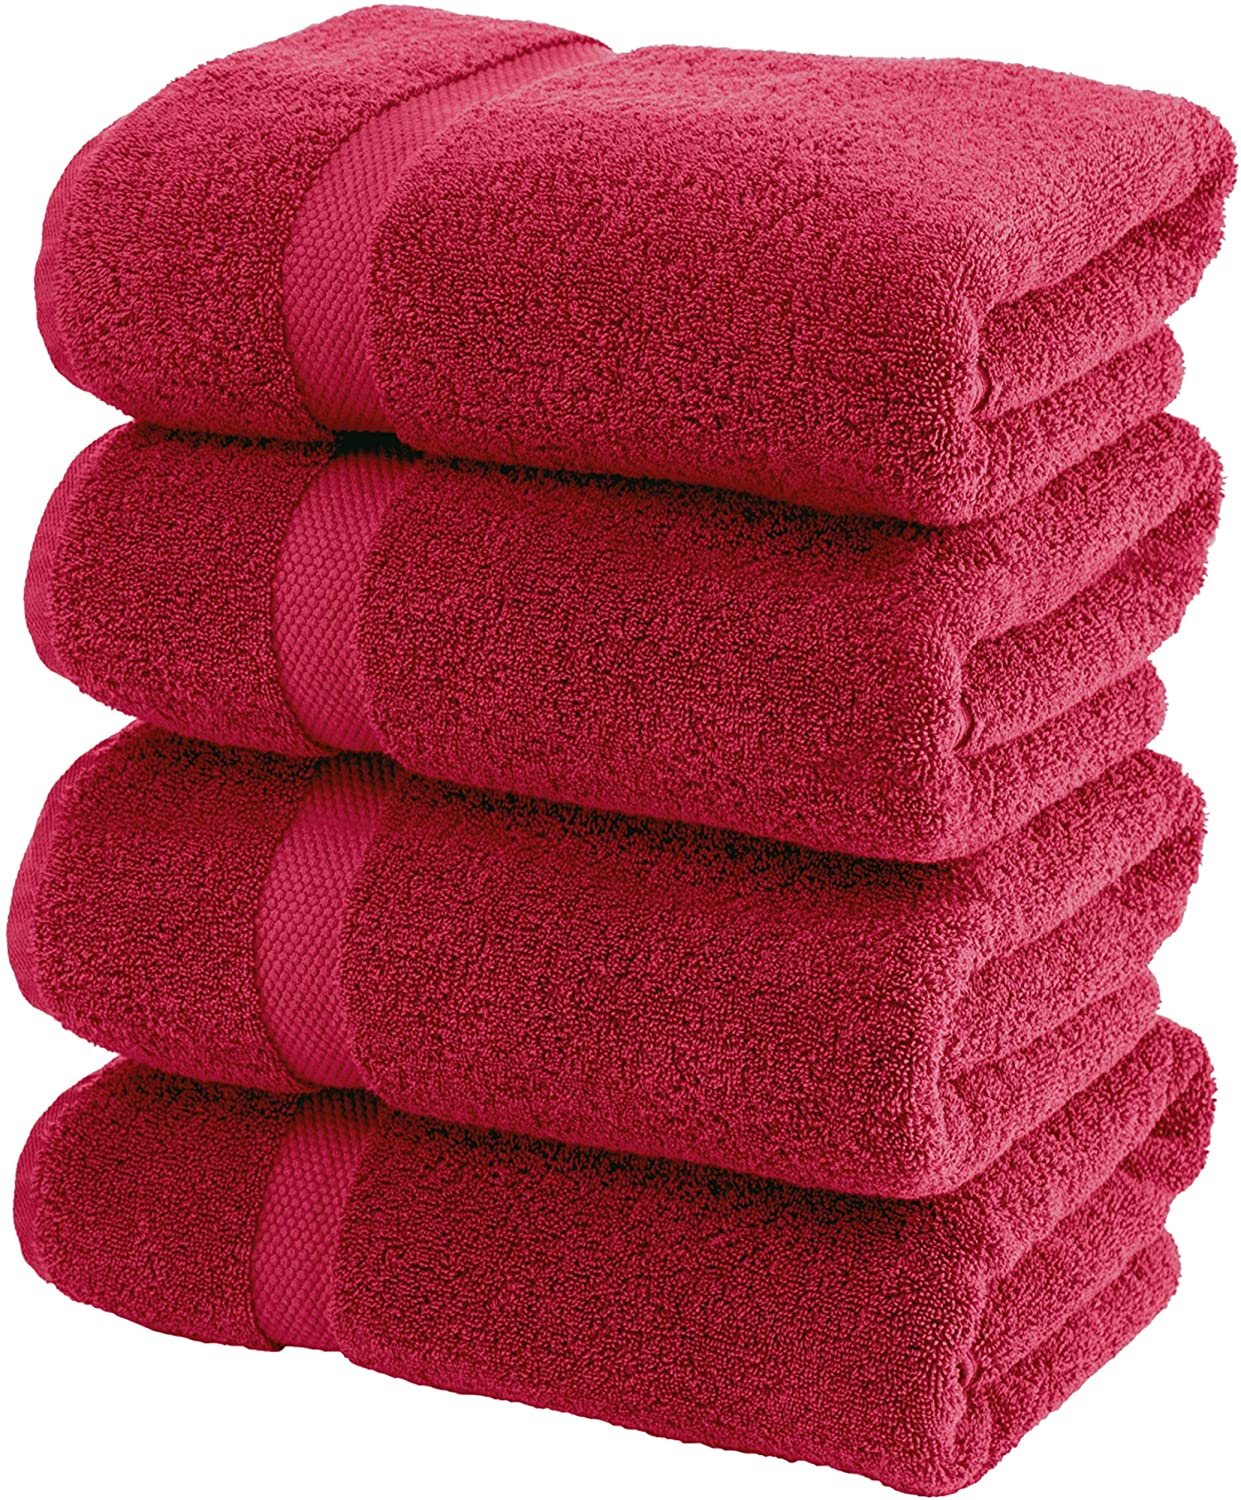 White Classic Luxury Bath Towels Large - Cotton Hotel spa Bathroom Towel | 27x54 | 4 Pack | Burgundy